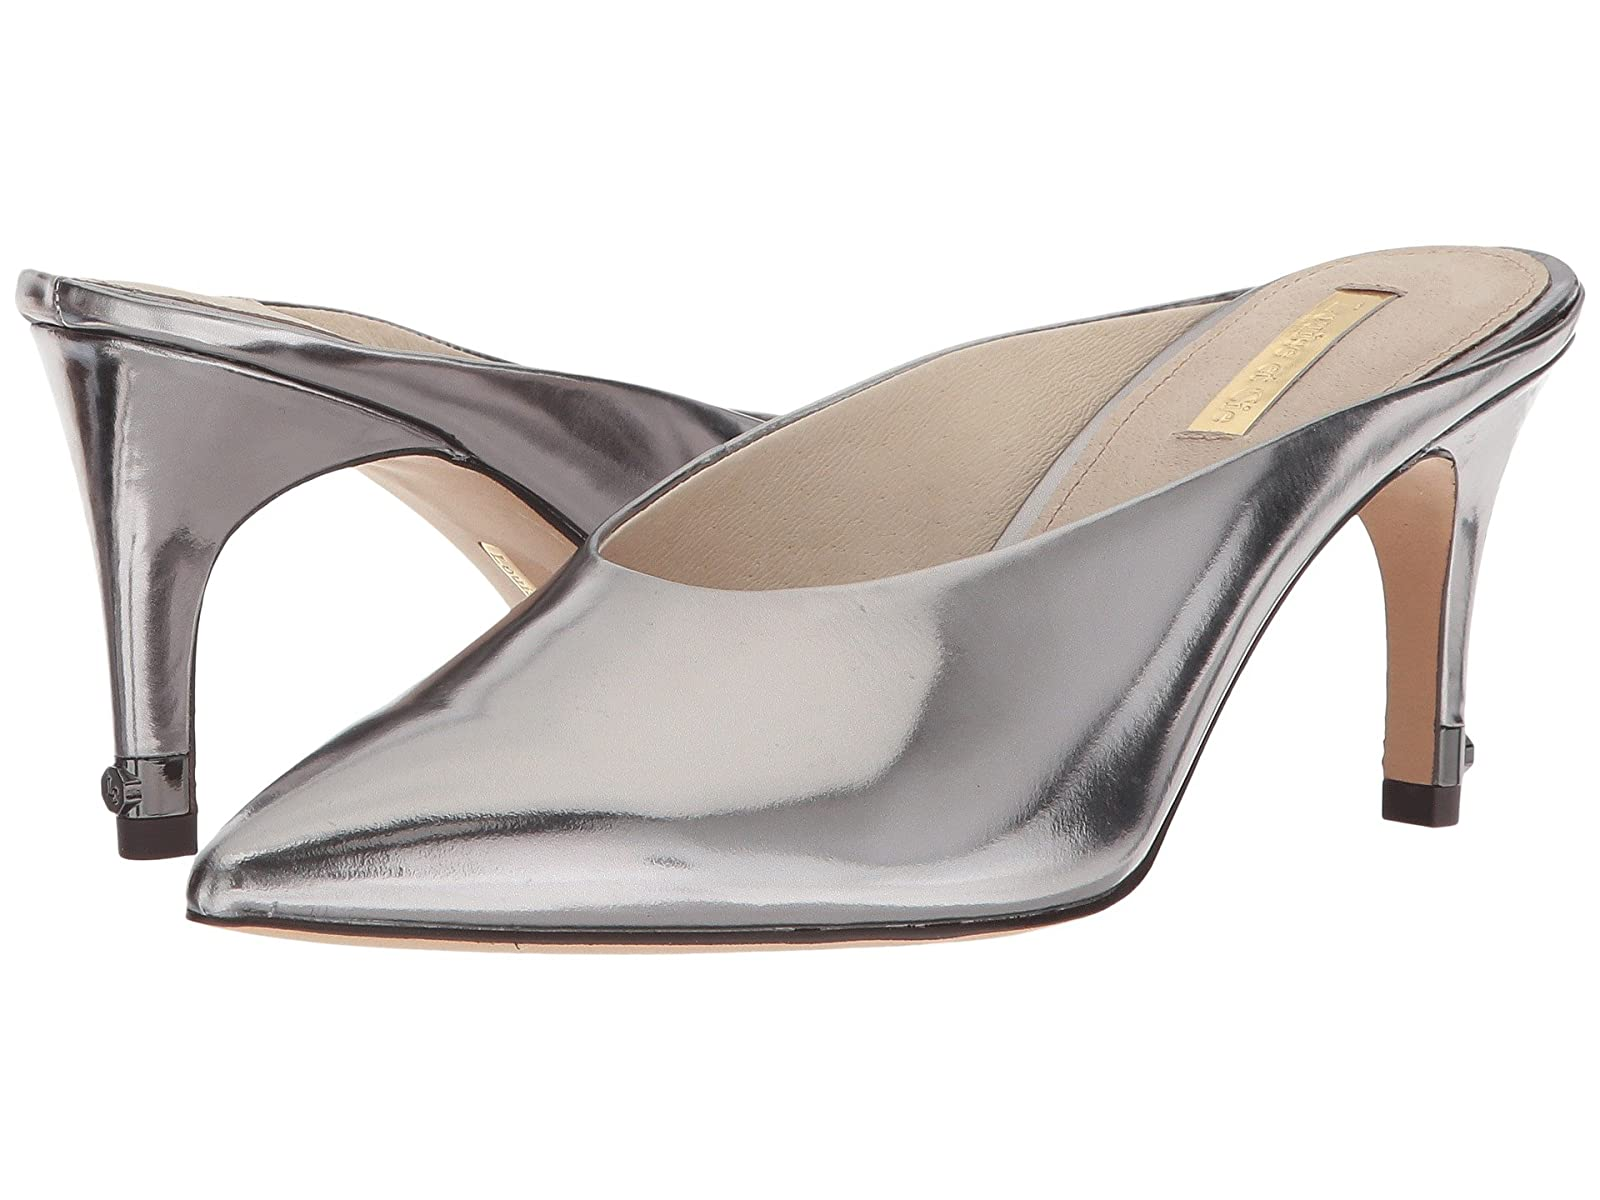 Louise et Cie KarasCheap and distinctive eye-catching shoes